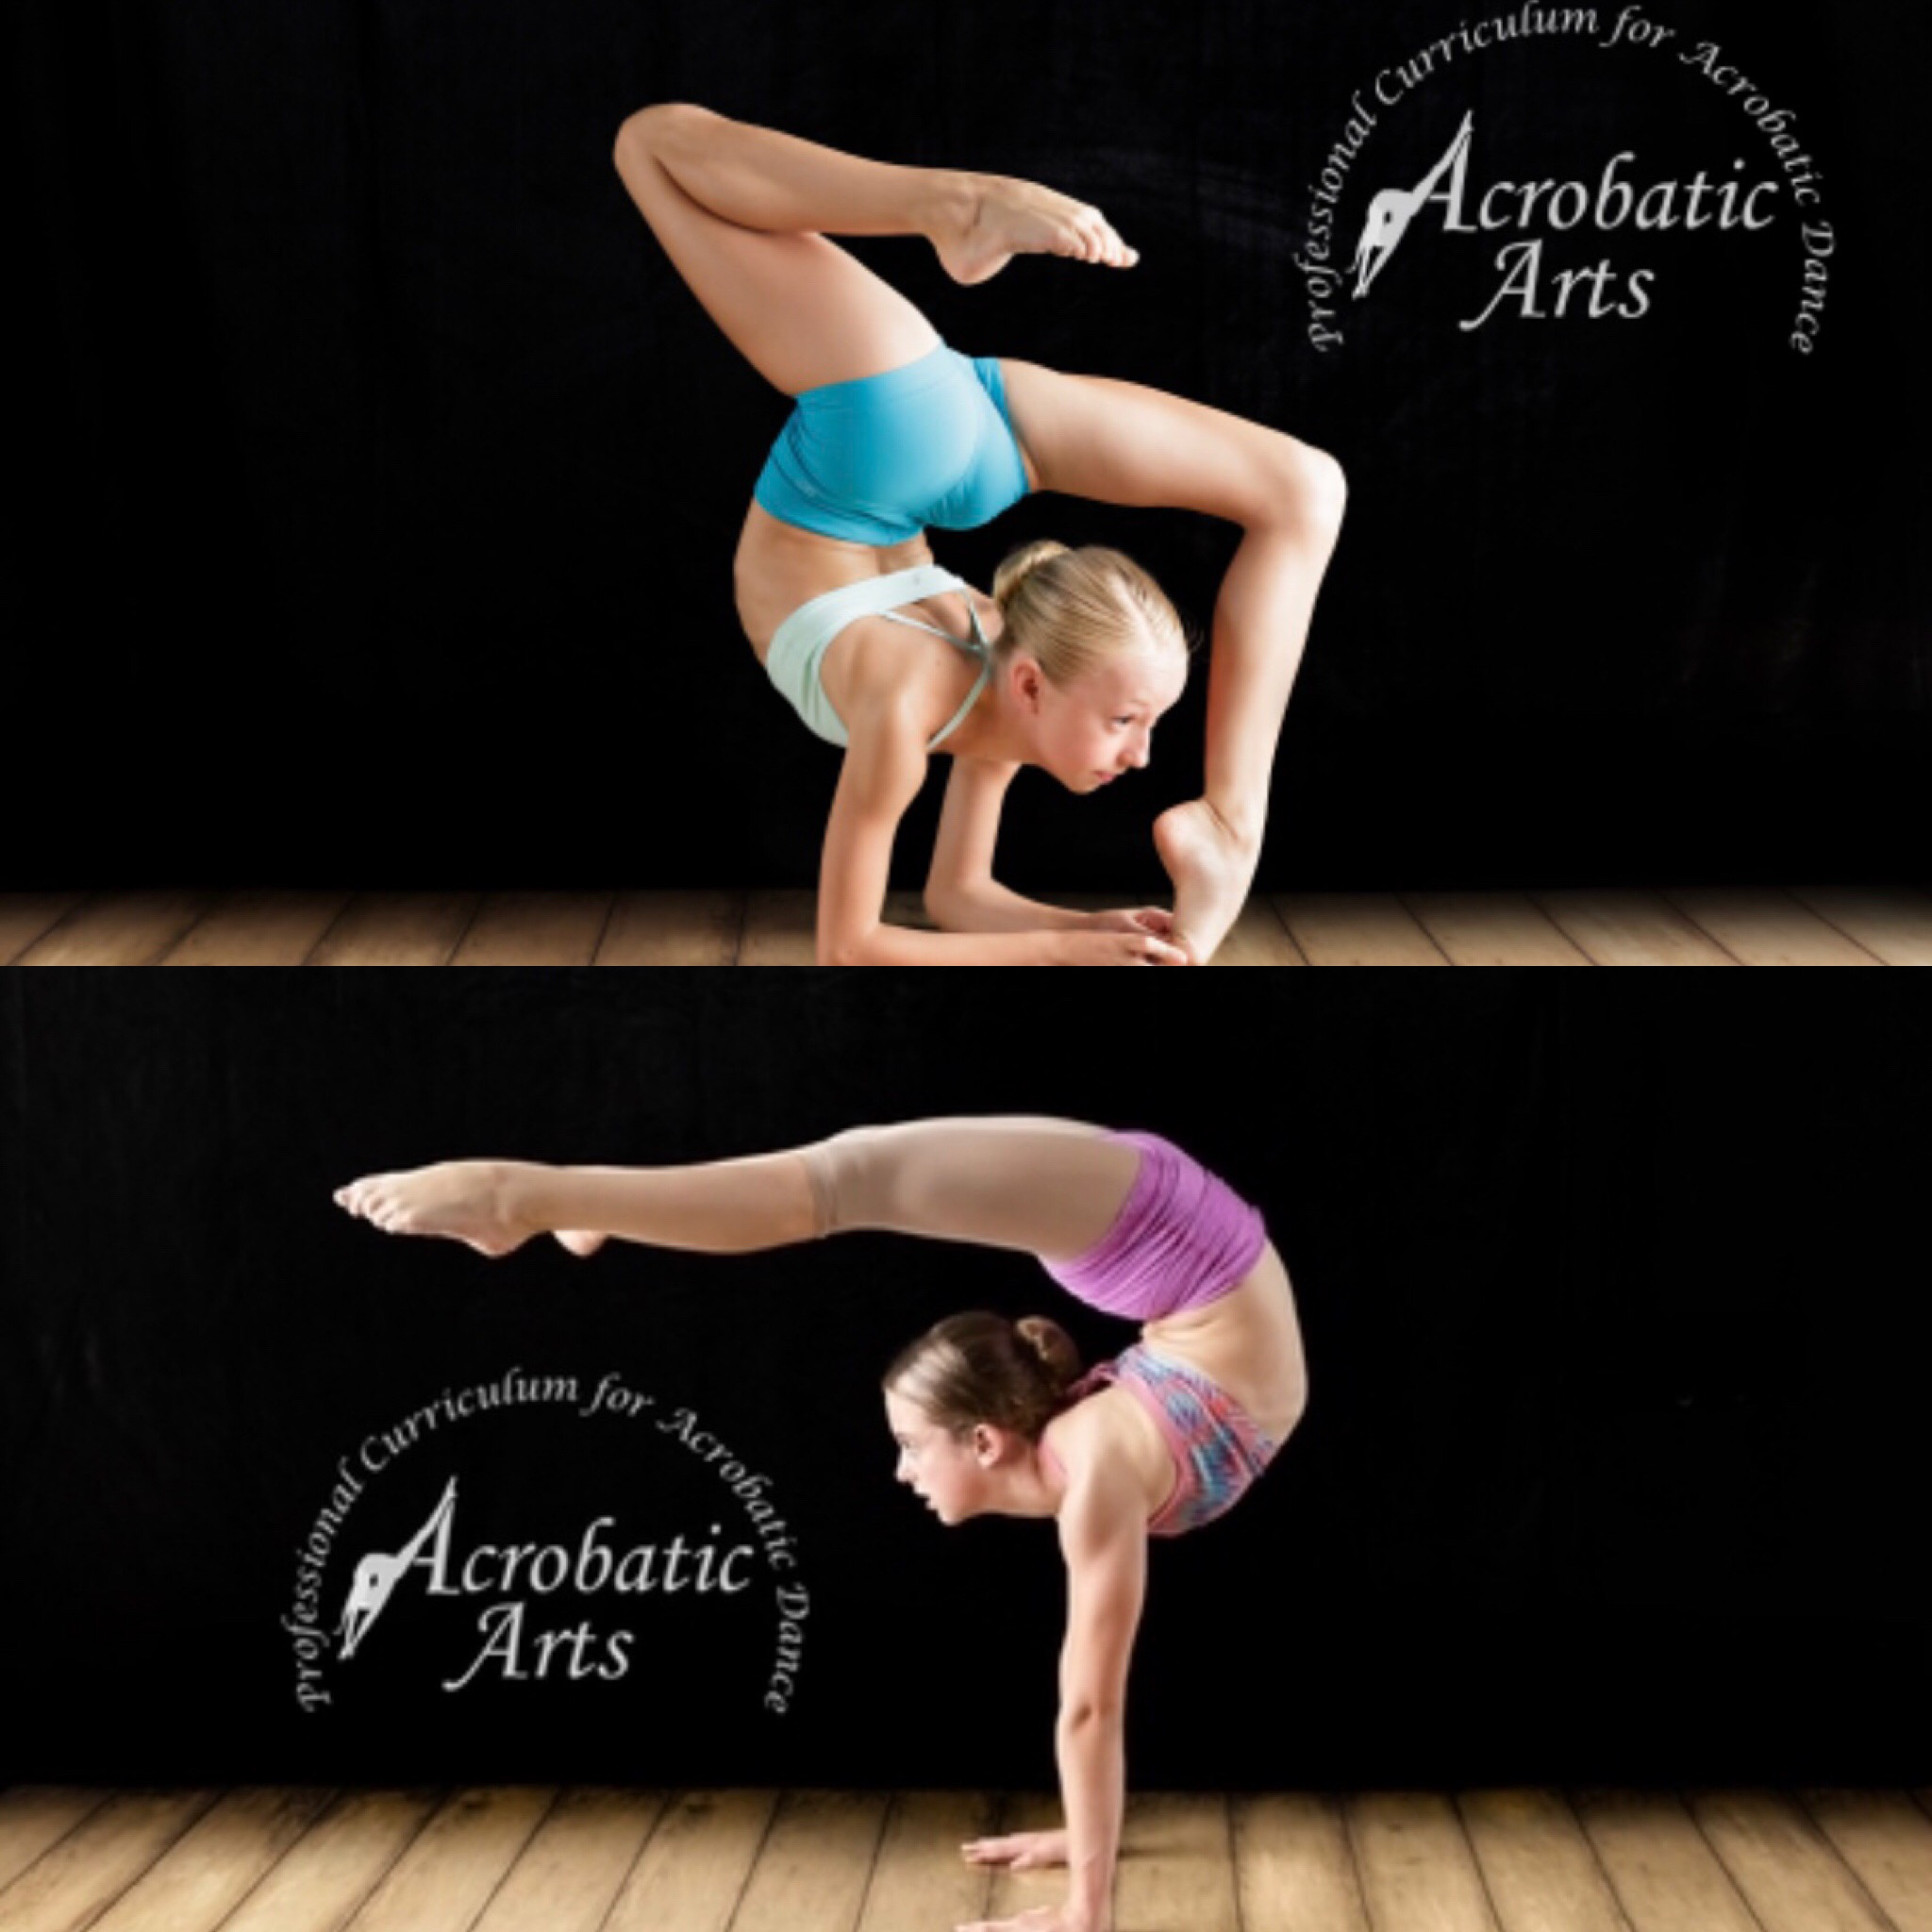 acro flyer photo.JPG